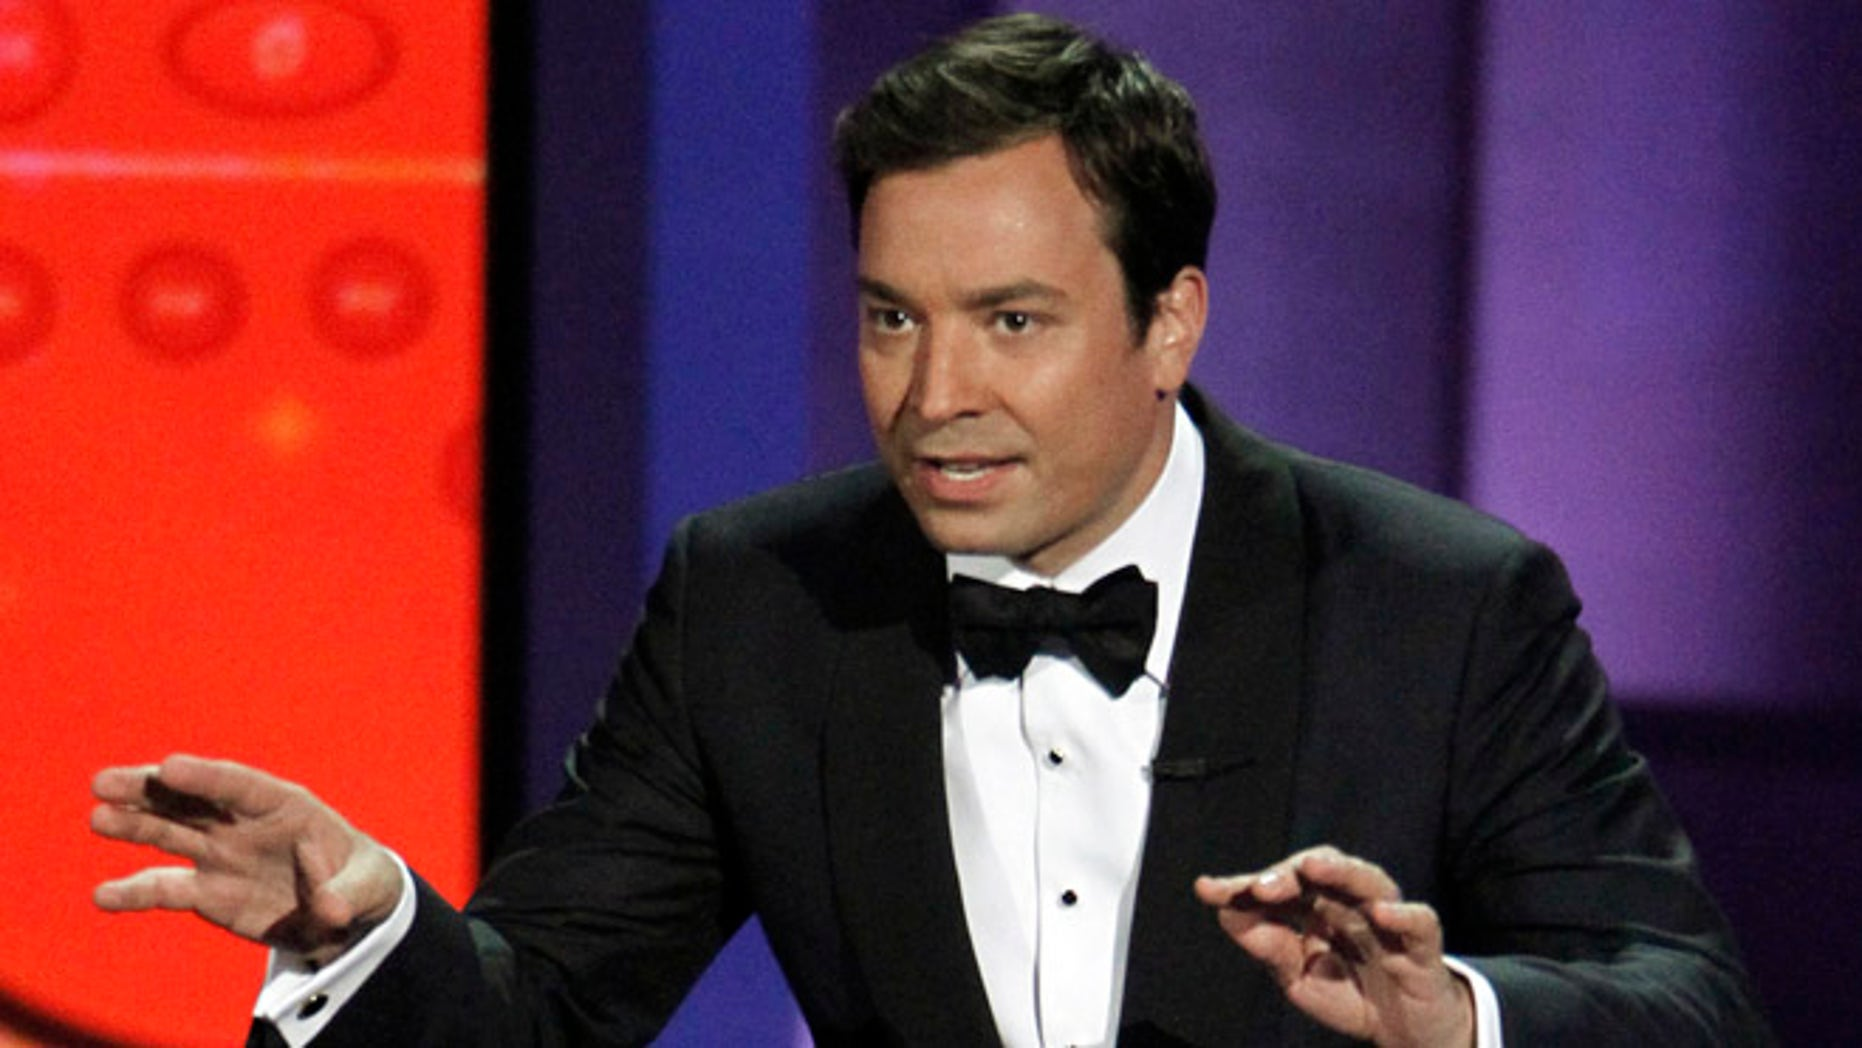 Aug. 29, 2010: In this file photo, host Jimmy Fallon presents during the 62nd Primetime Emmy Awards in Los Angeles.